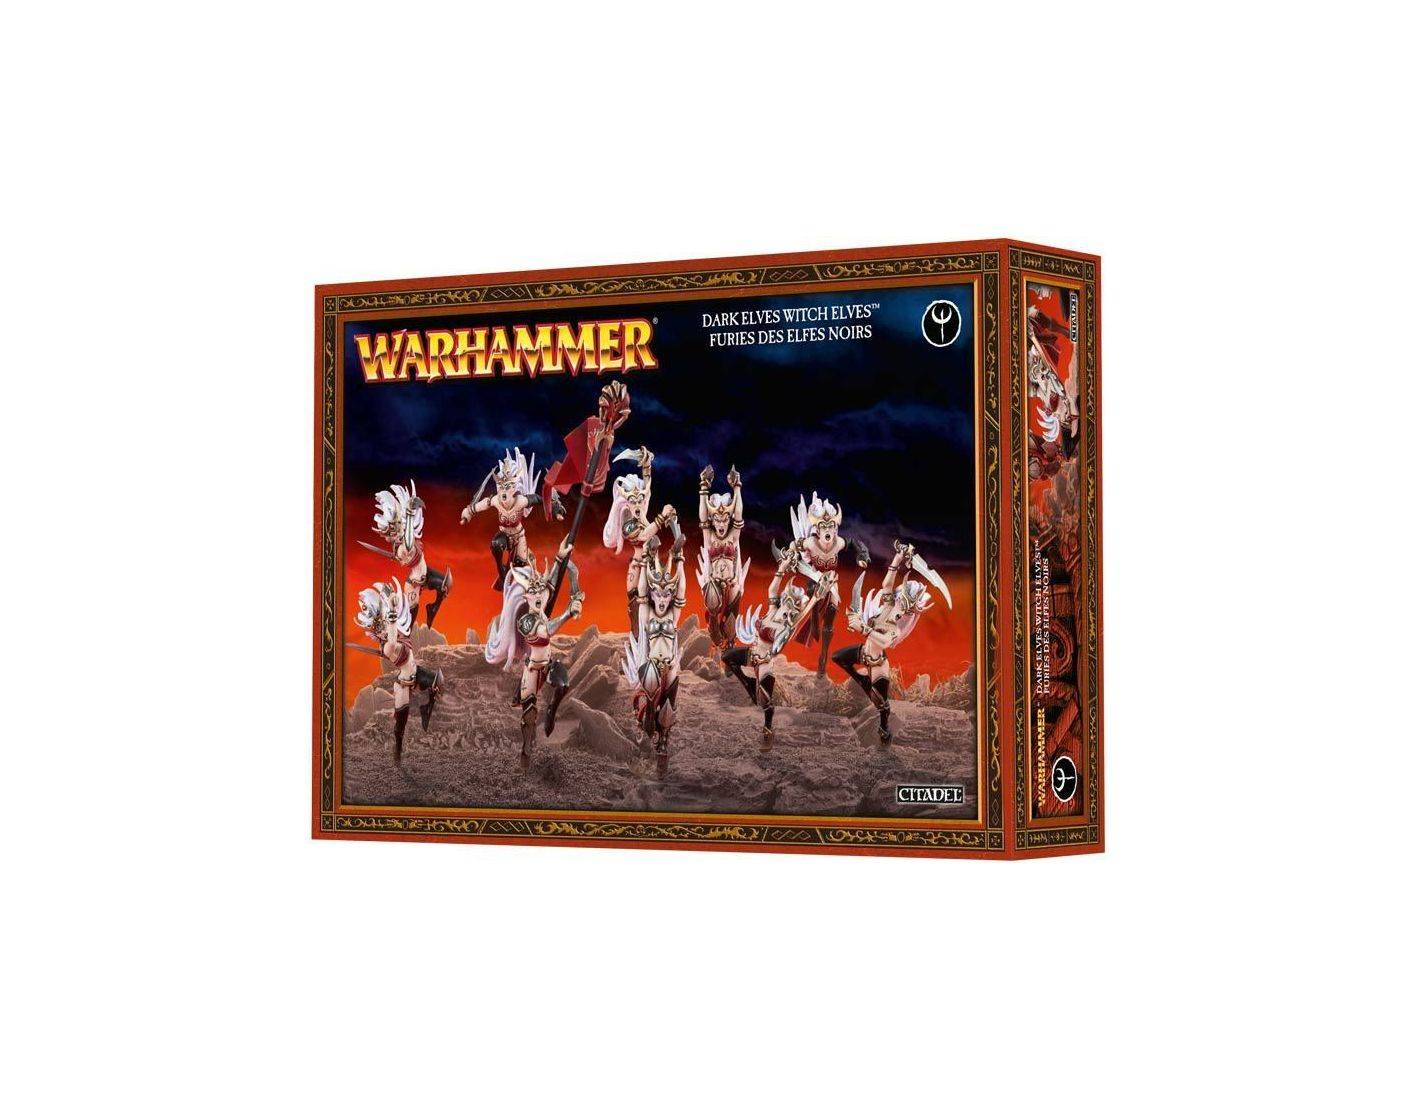 Games Workshop Warhammer 85-10  DARK ELVES WITCH ELVES Personaggi